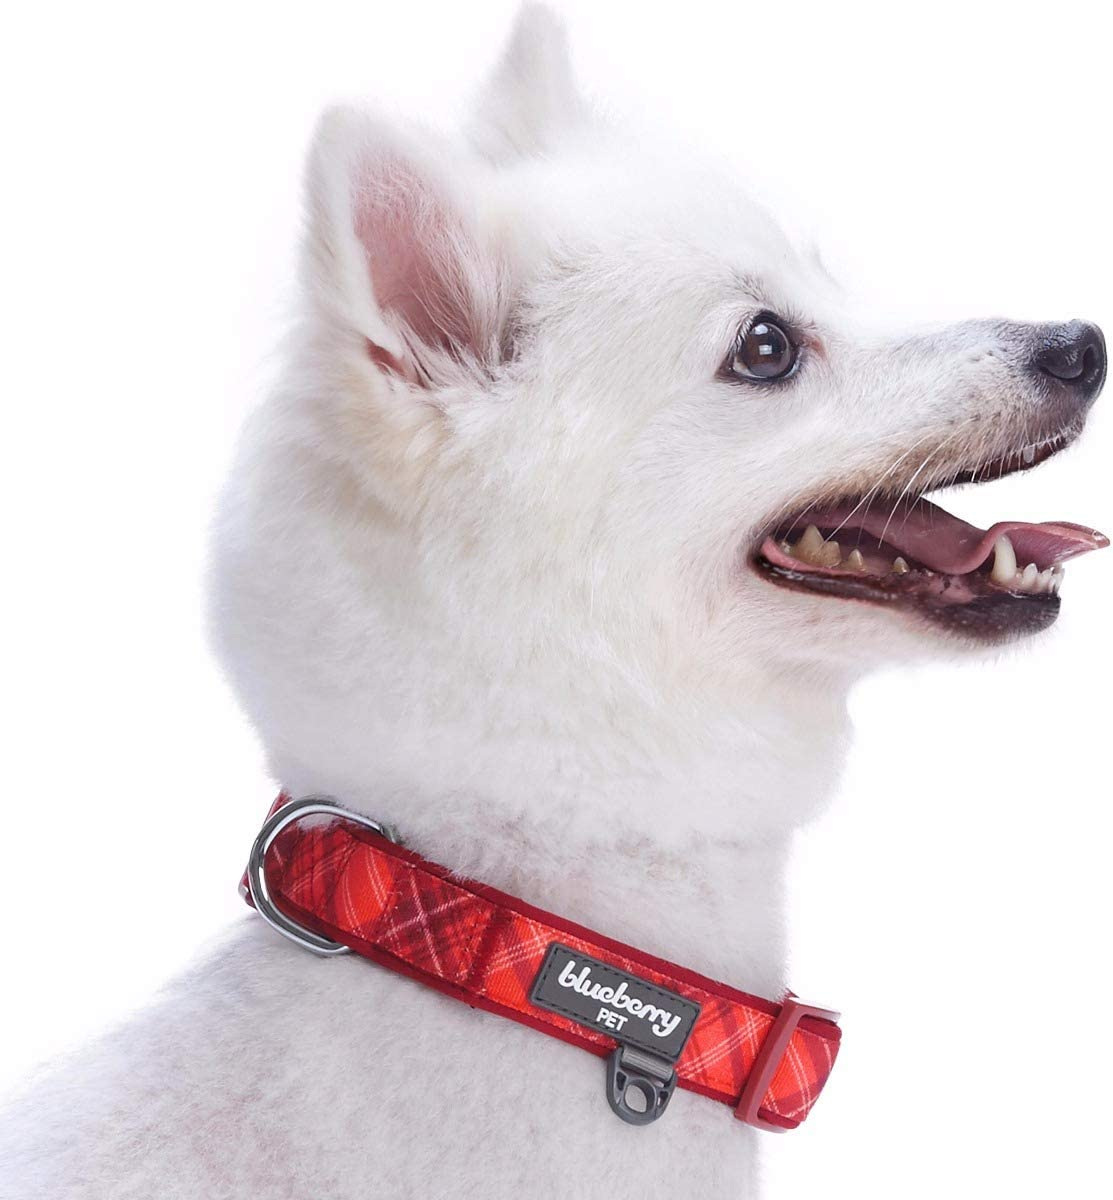 Small Adjustable Collars for Dogs Neck 12-16 Blueberry Pet Cardinal Red Nautical Sailboat Designer Tie Dog Collar